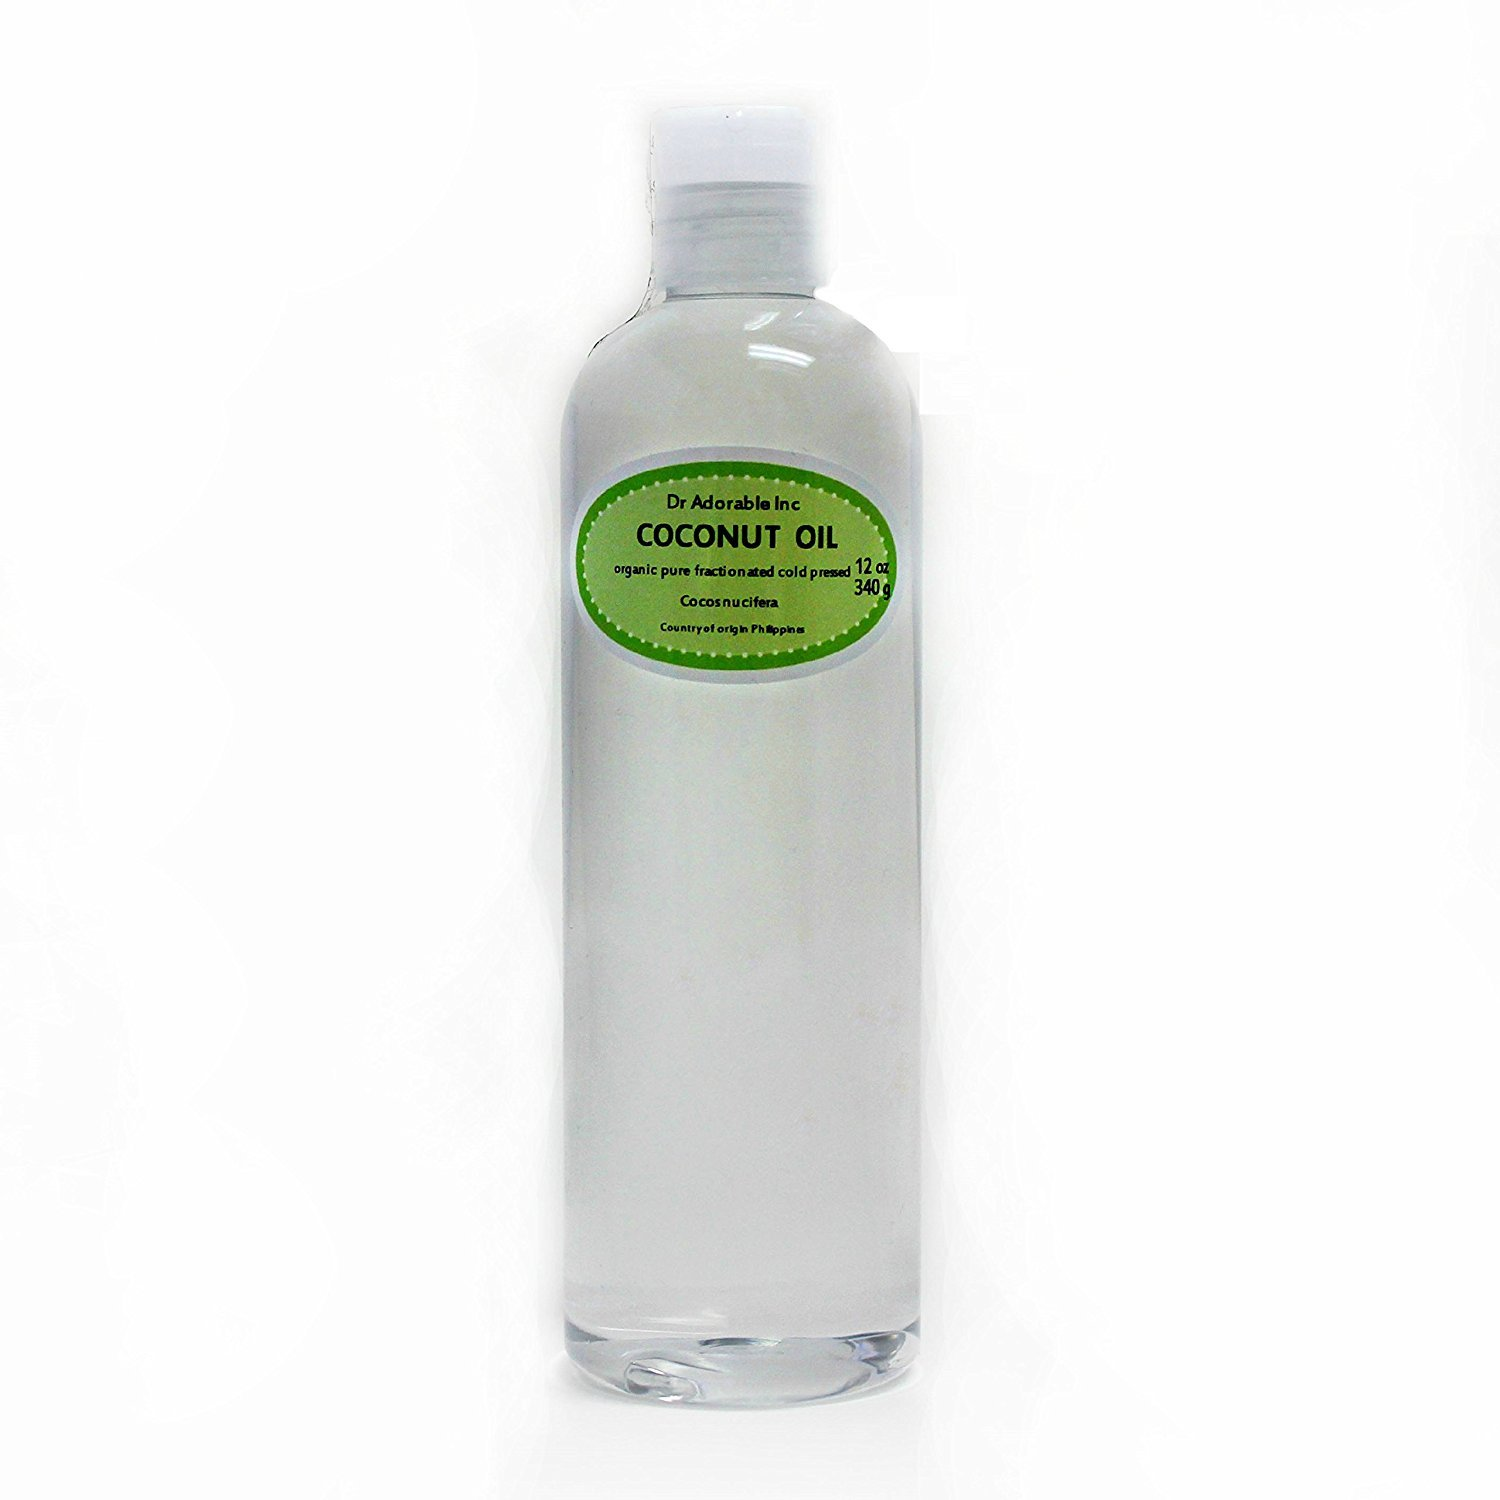 Fractionated Coconut Oil Pure Max 72% OFF Organic New mail order Oz Dr.Adorable by 12 Raw